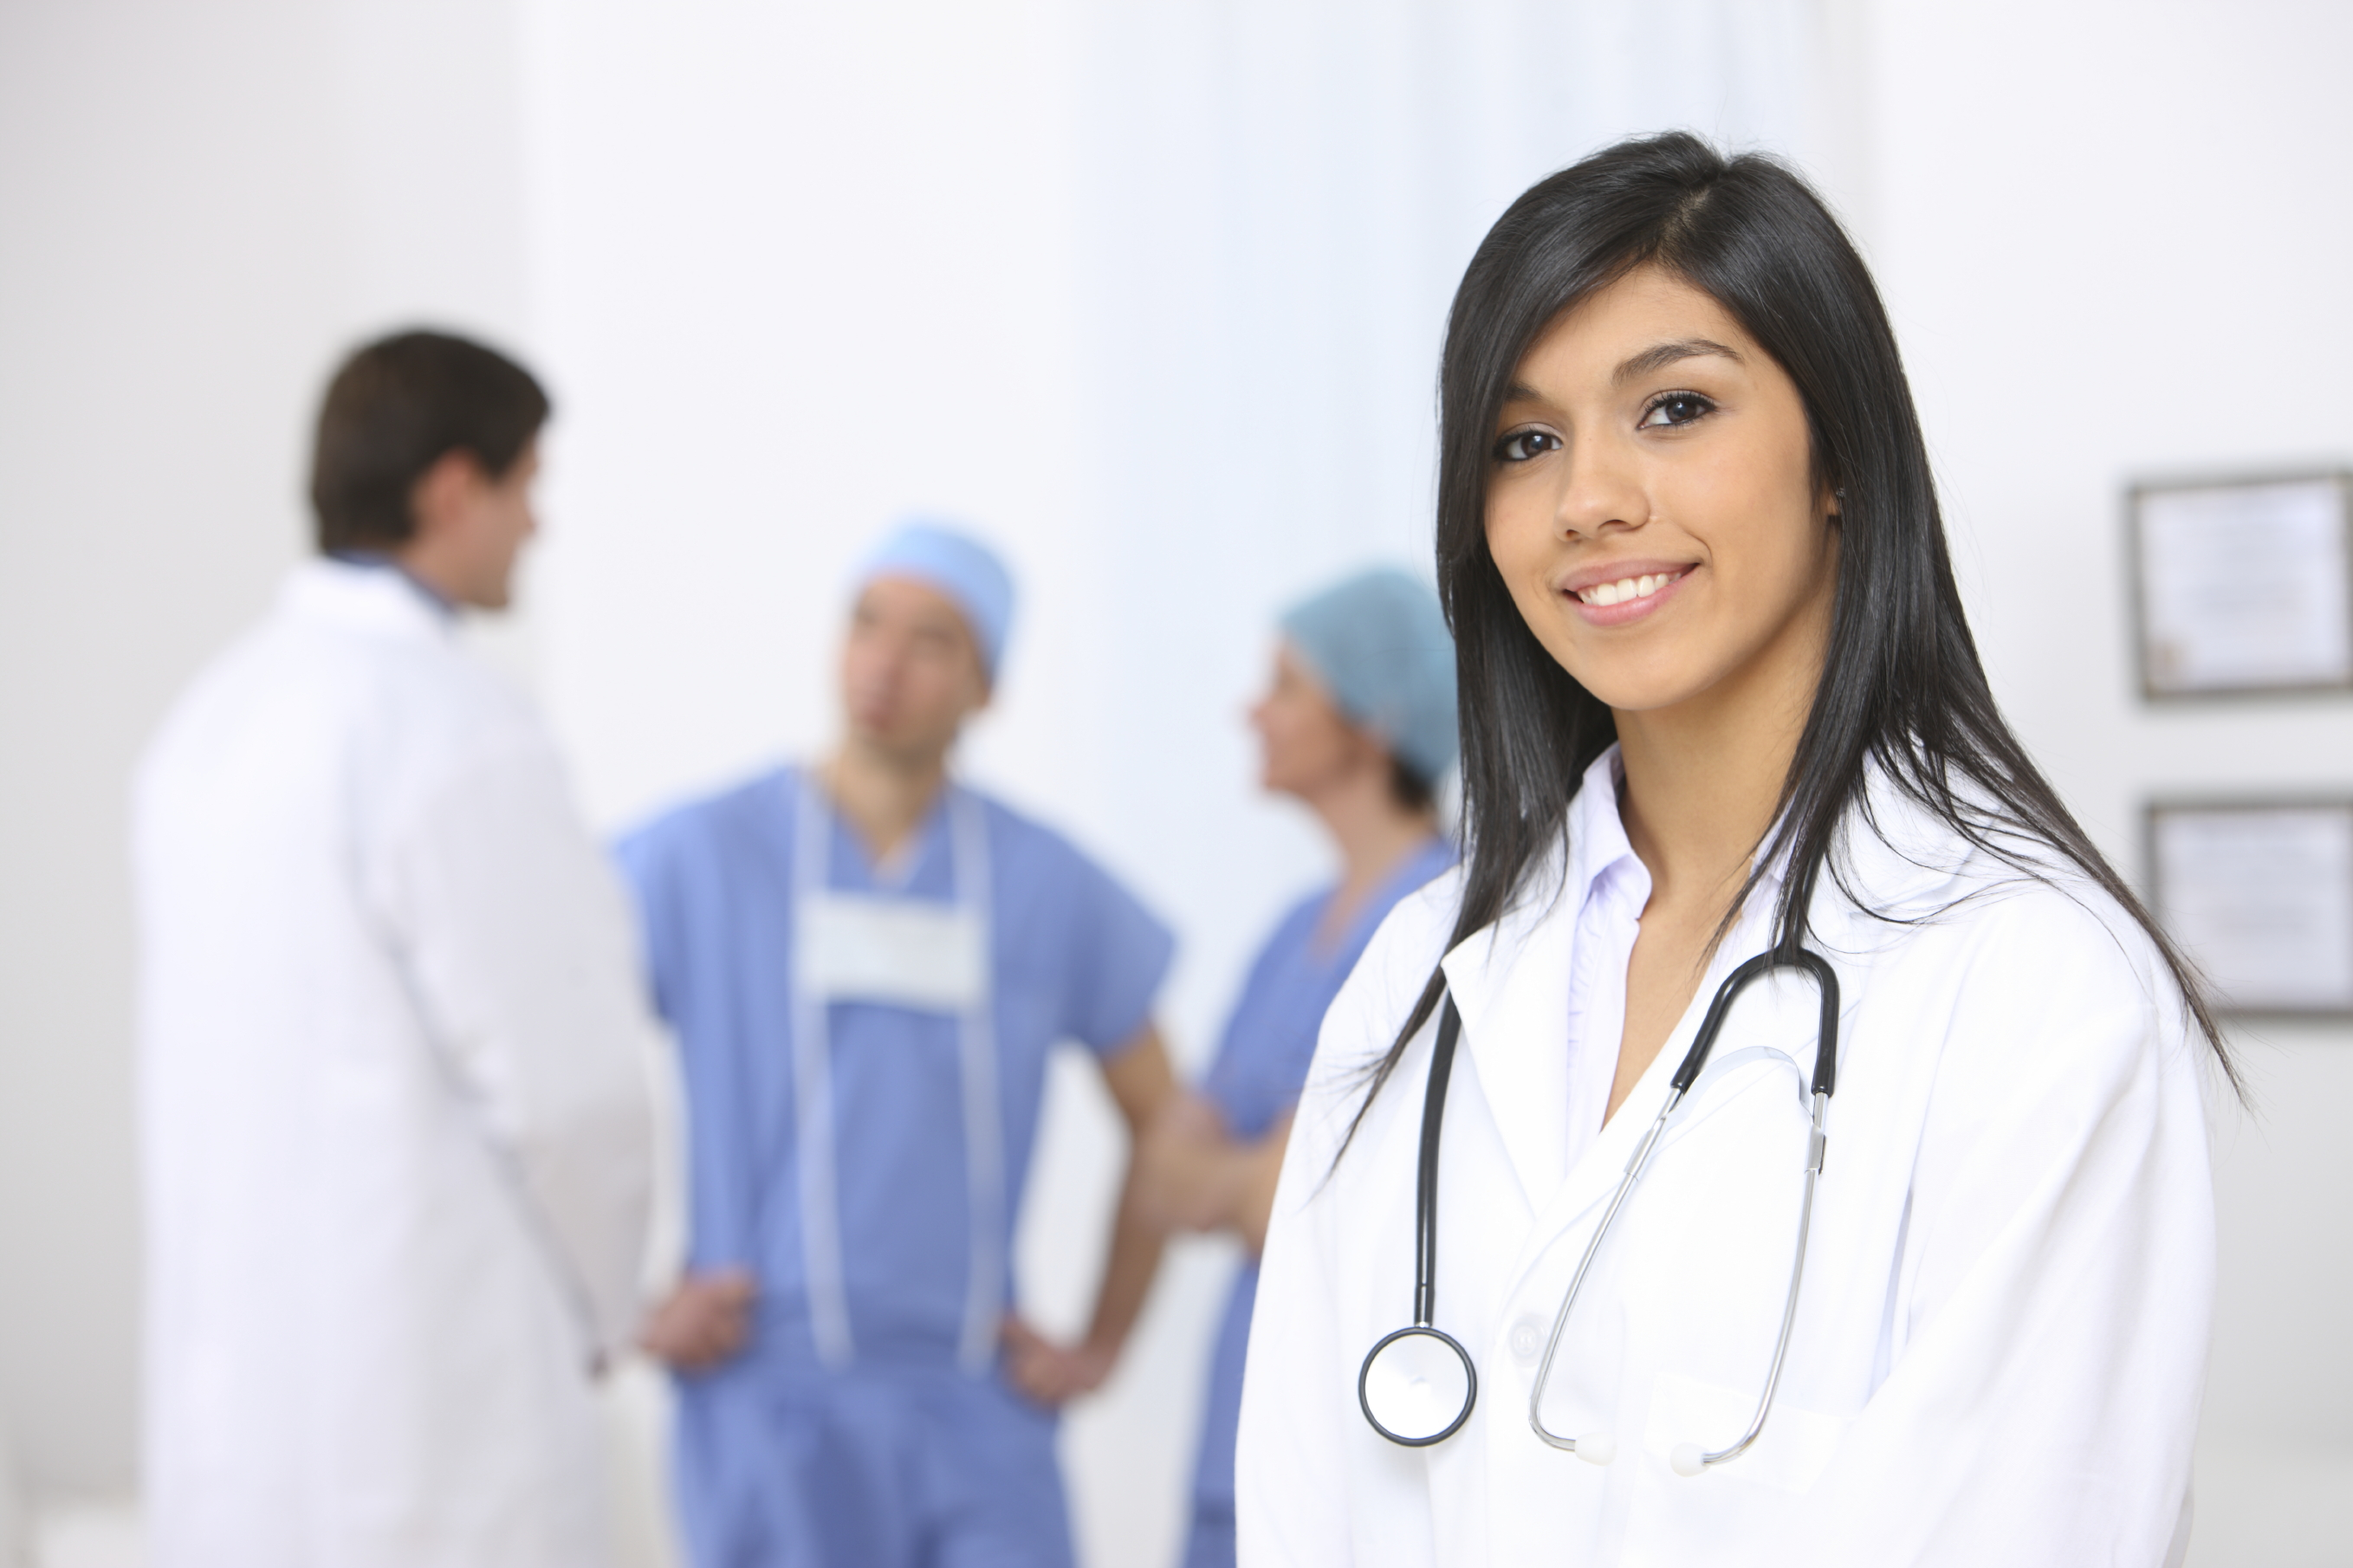 smiling_medical_doctor_with_stethoscope_on_the_hospitals_background_1350367266